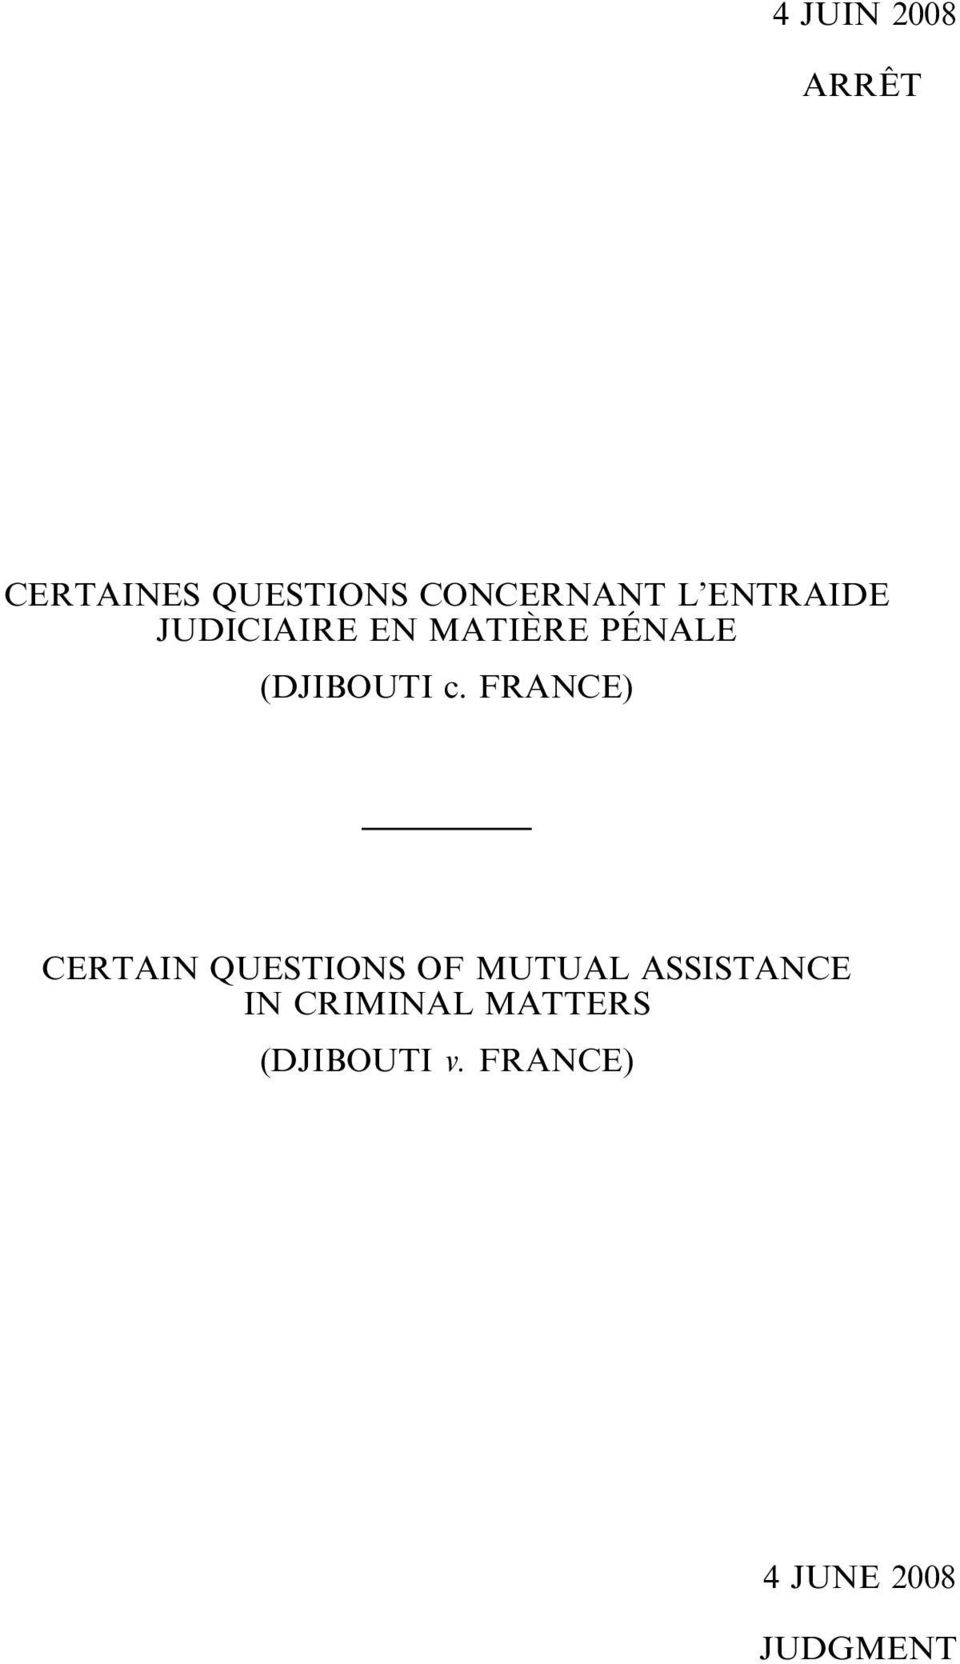 FRANCE) CERTAIN QUESTIONS OF MUTUAL ASSISTANCE IN